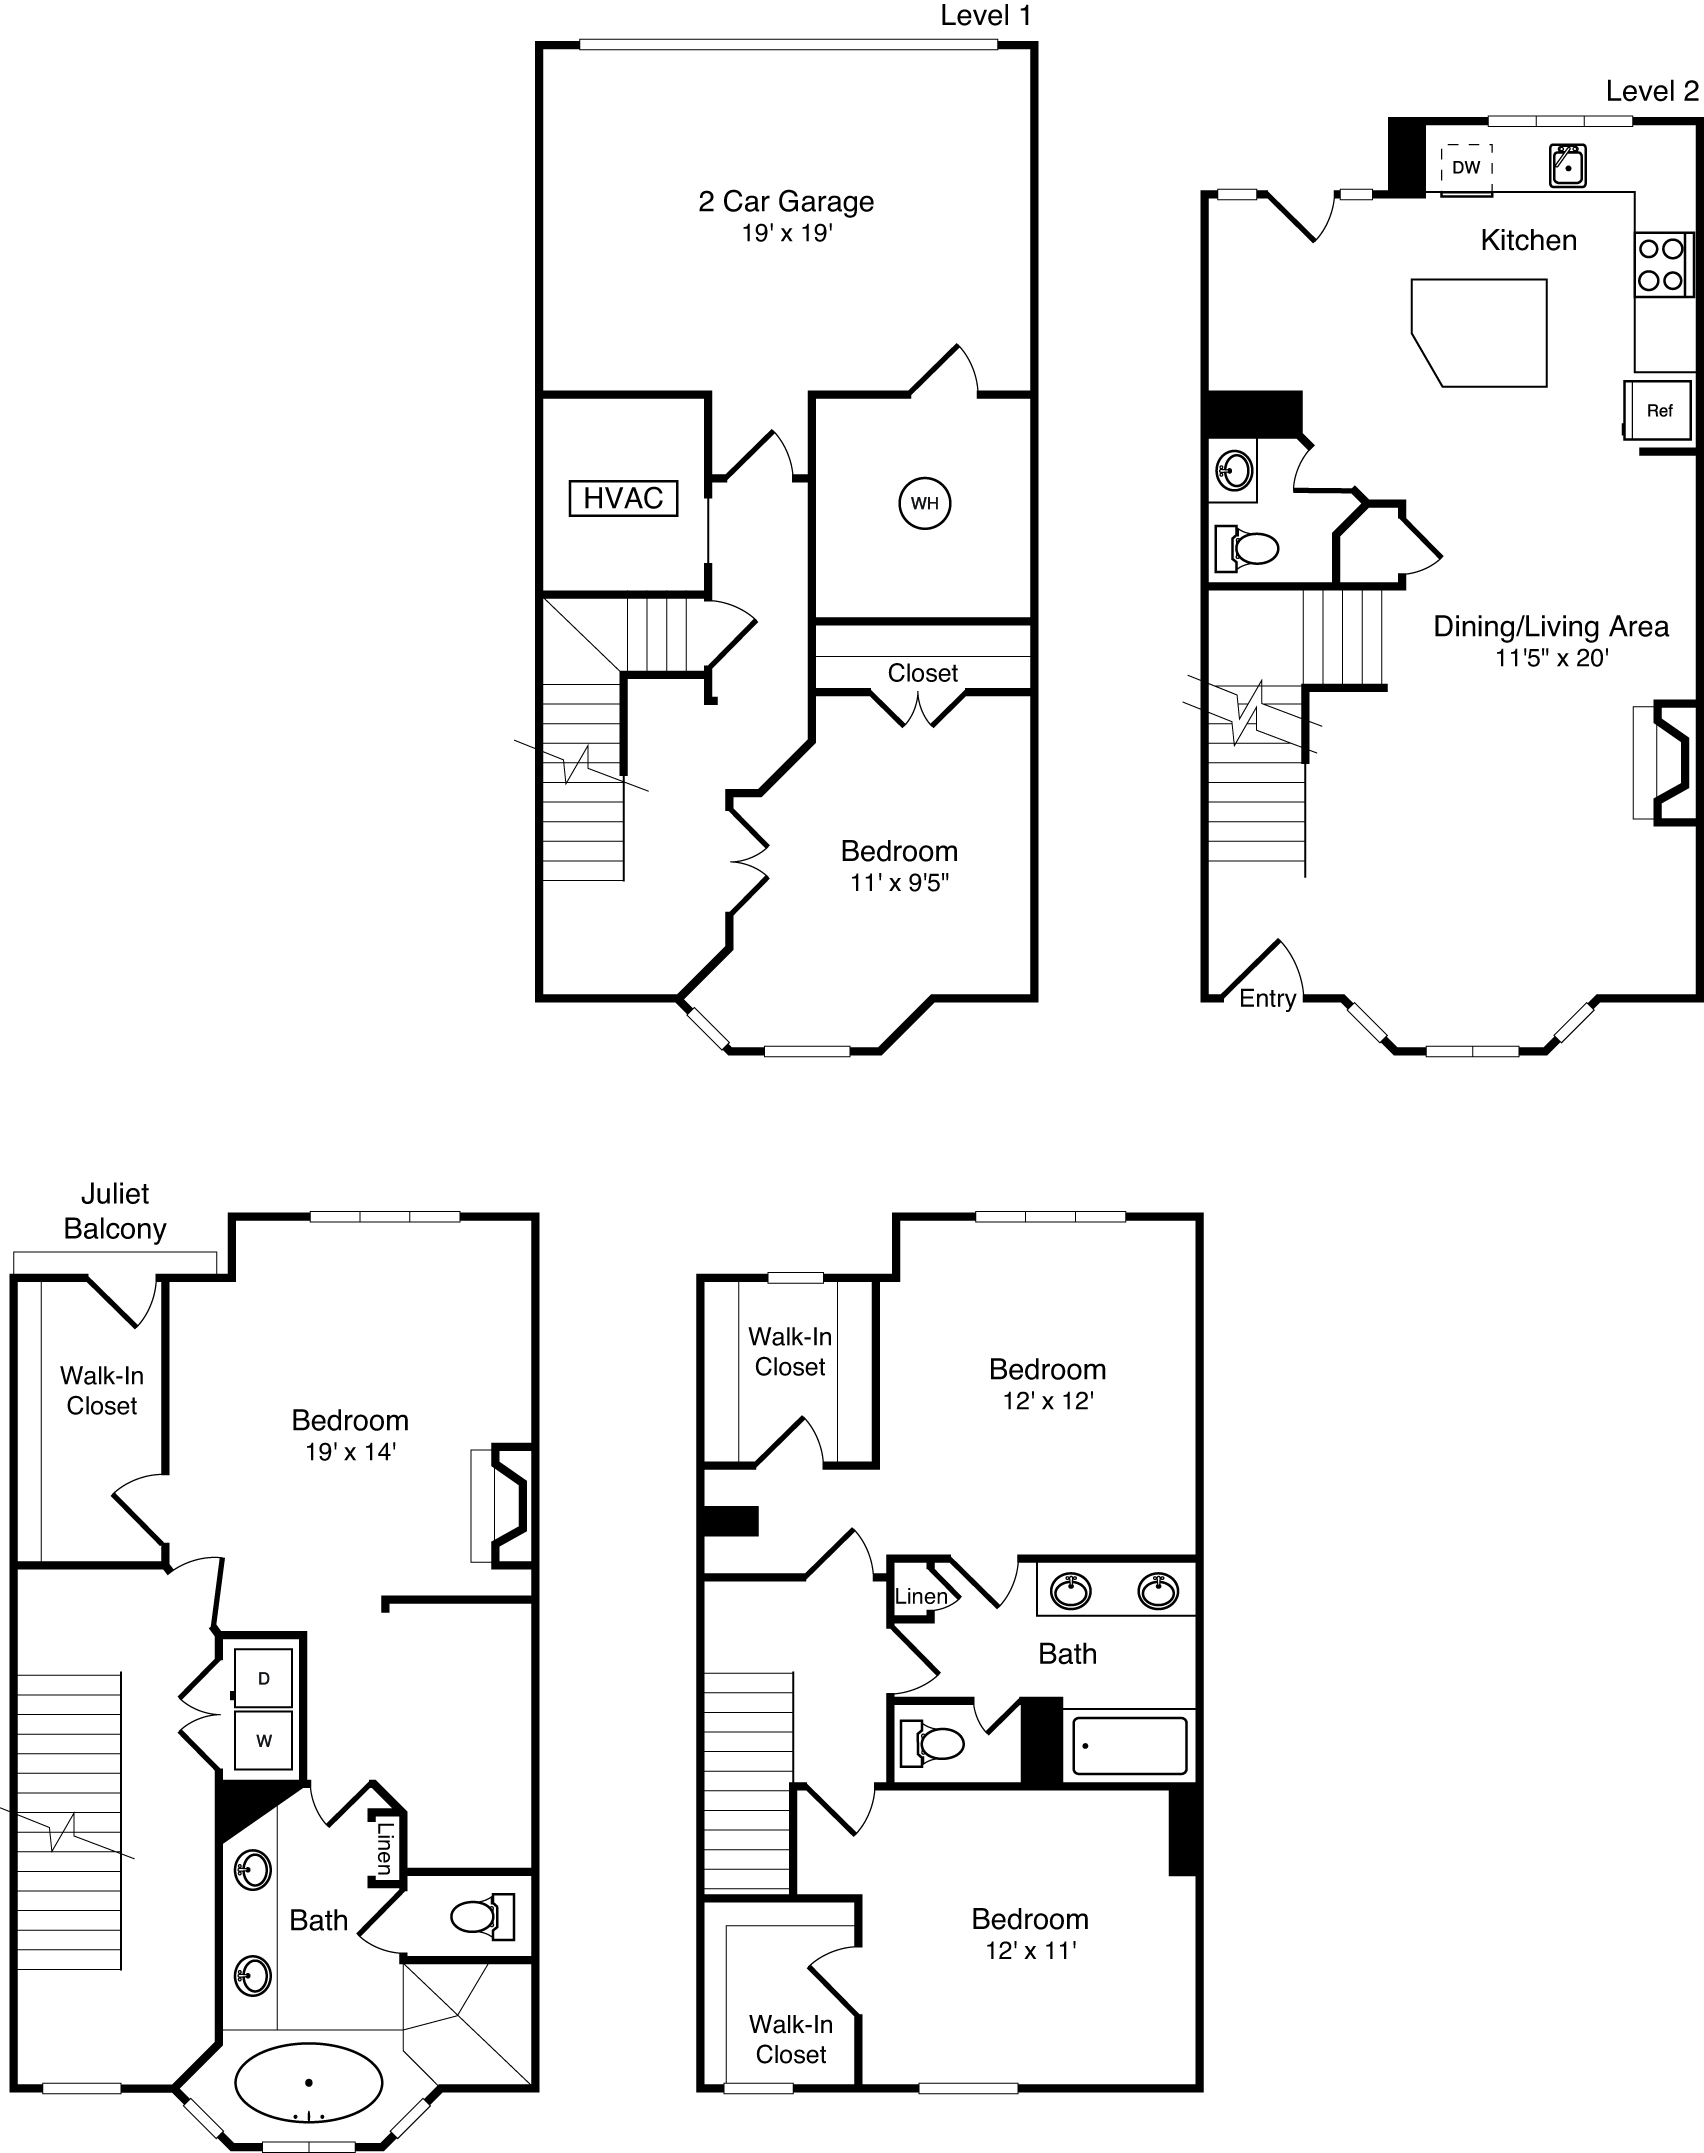 D3C townhouse floor plan is 4 beds, 2.5 baths and is 2832 square feet